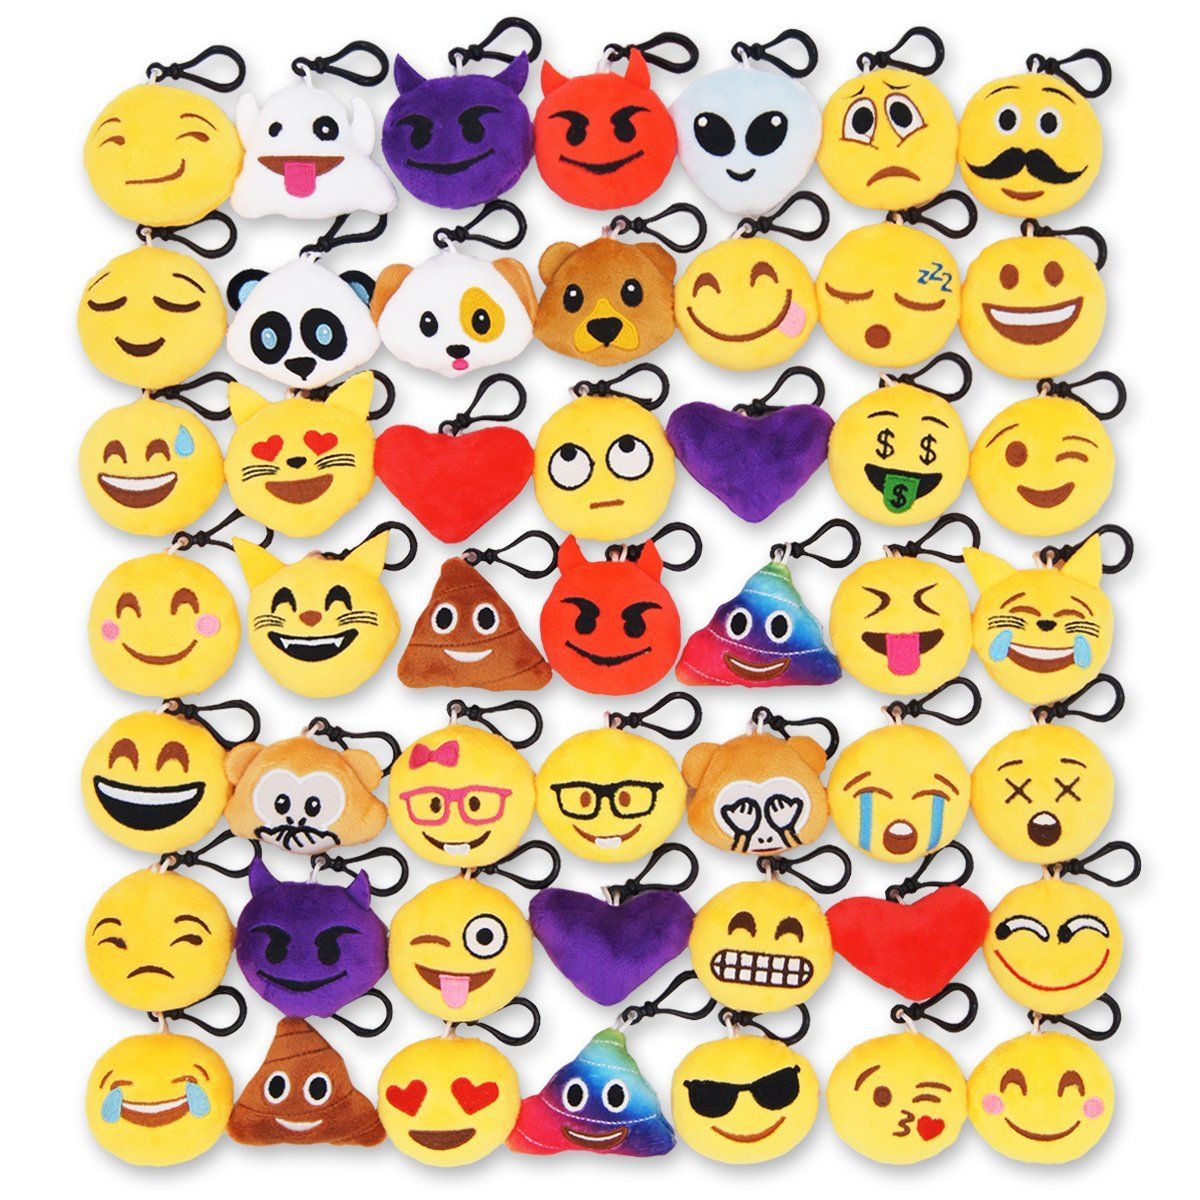 25 Pack Emoji Key Chain Mini Plush Poop Pillows Emoji Keychain Christmas//Birthday Party Supplies 2 Set of 25 Party Favors for Kids